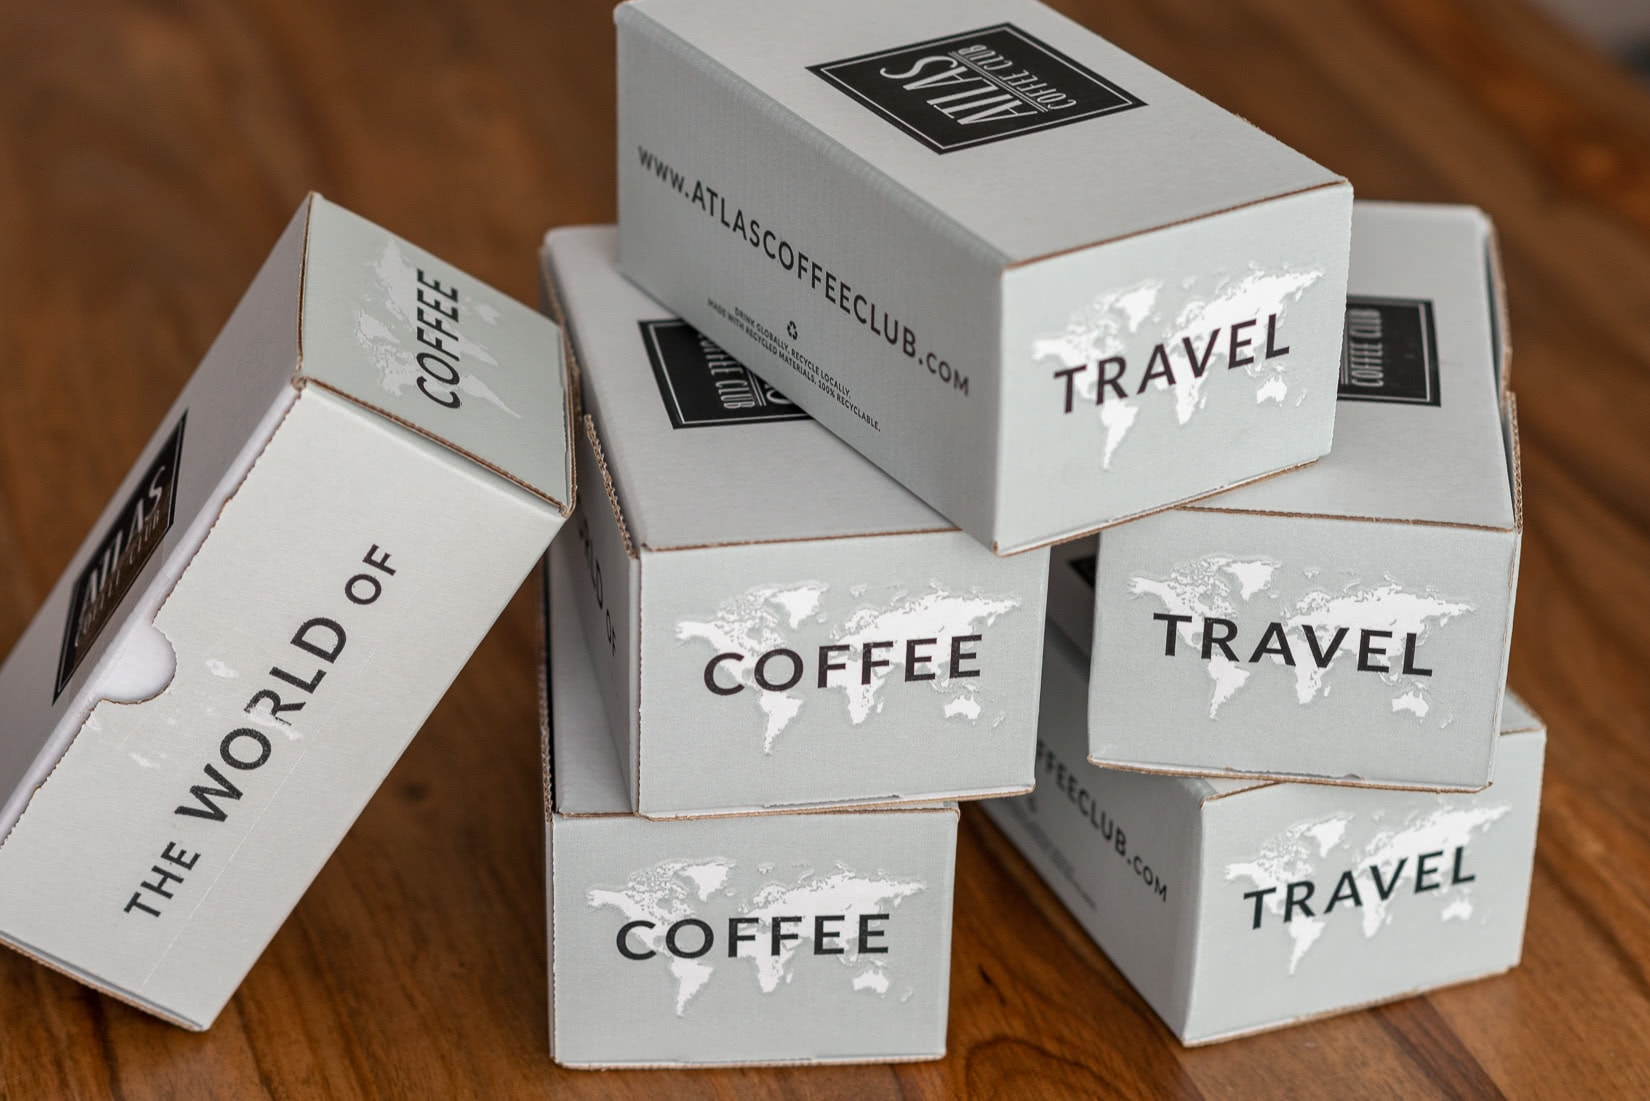 Atlas Coffee Club subscription review unboxing - Luxe Digital